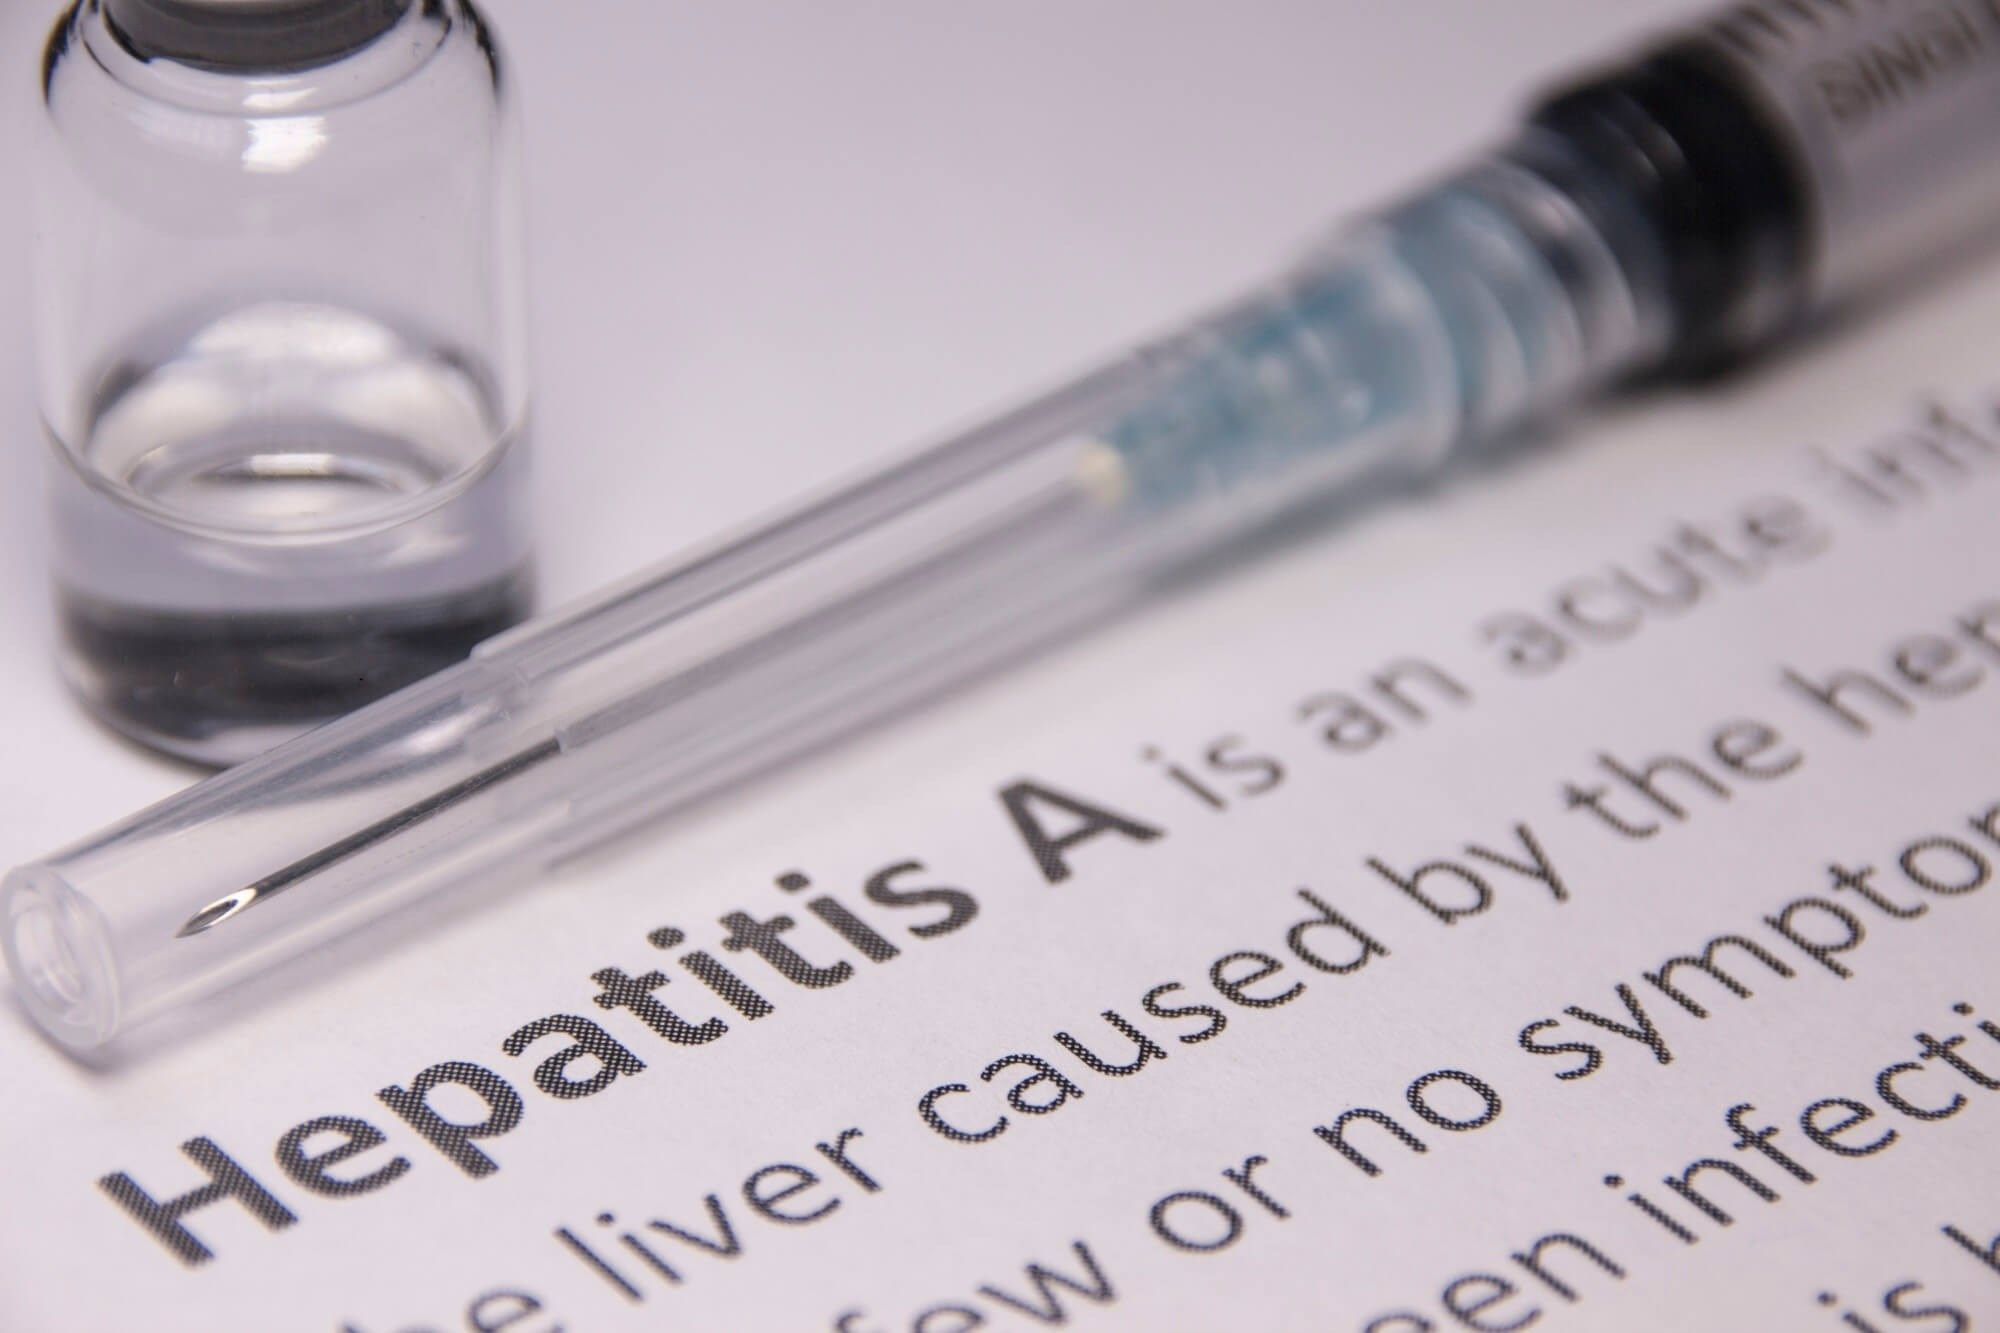 Infection with Hepatitis A is effectively prevented with either vaccination or immune globulin administration prior to travel to endemic regions or post-exposure prophylaxis.